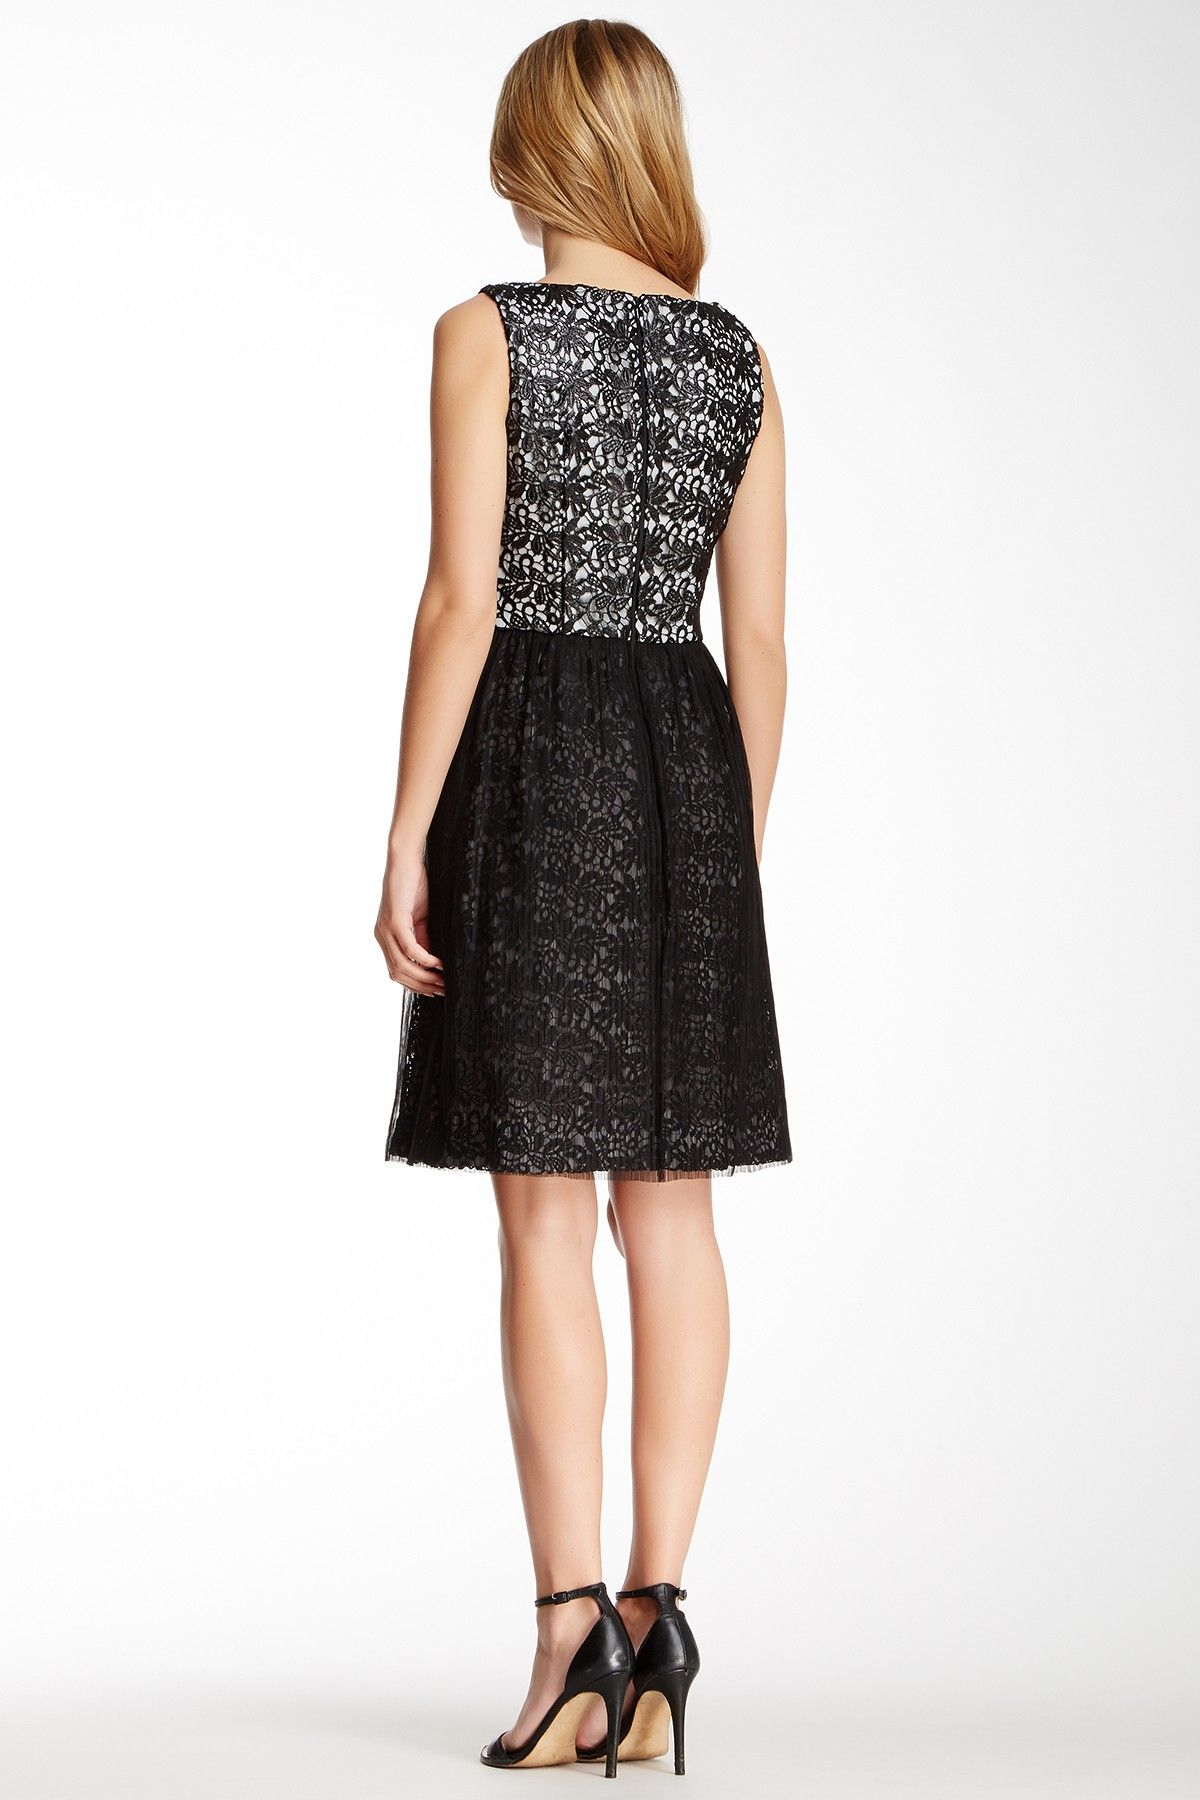 French connection glazed lace dress dresses lace